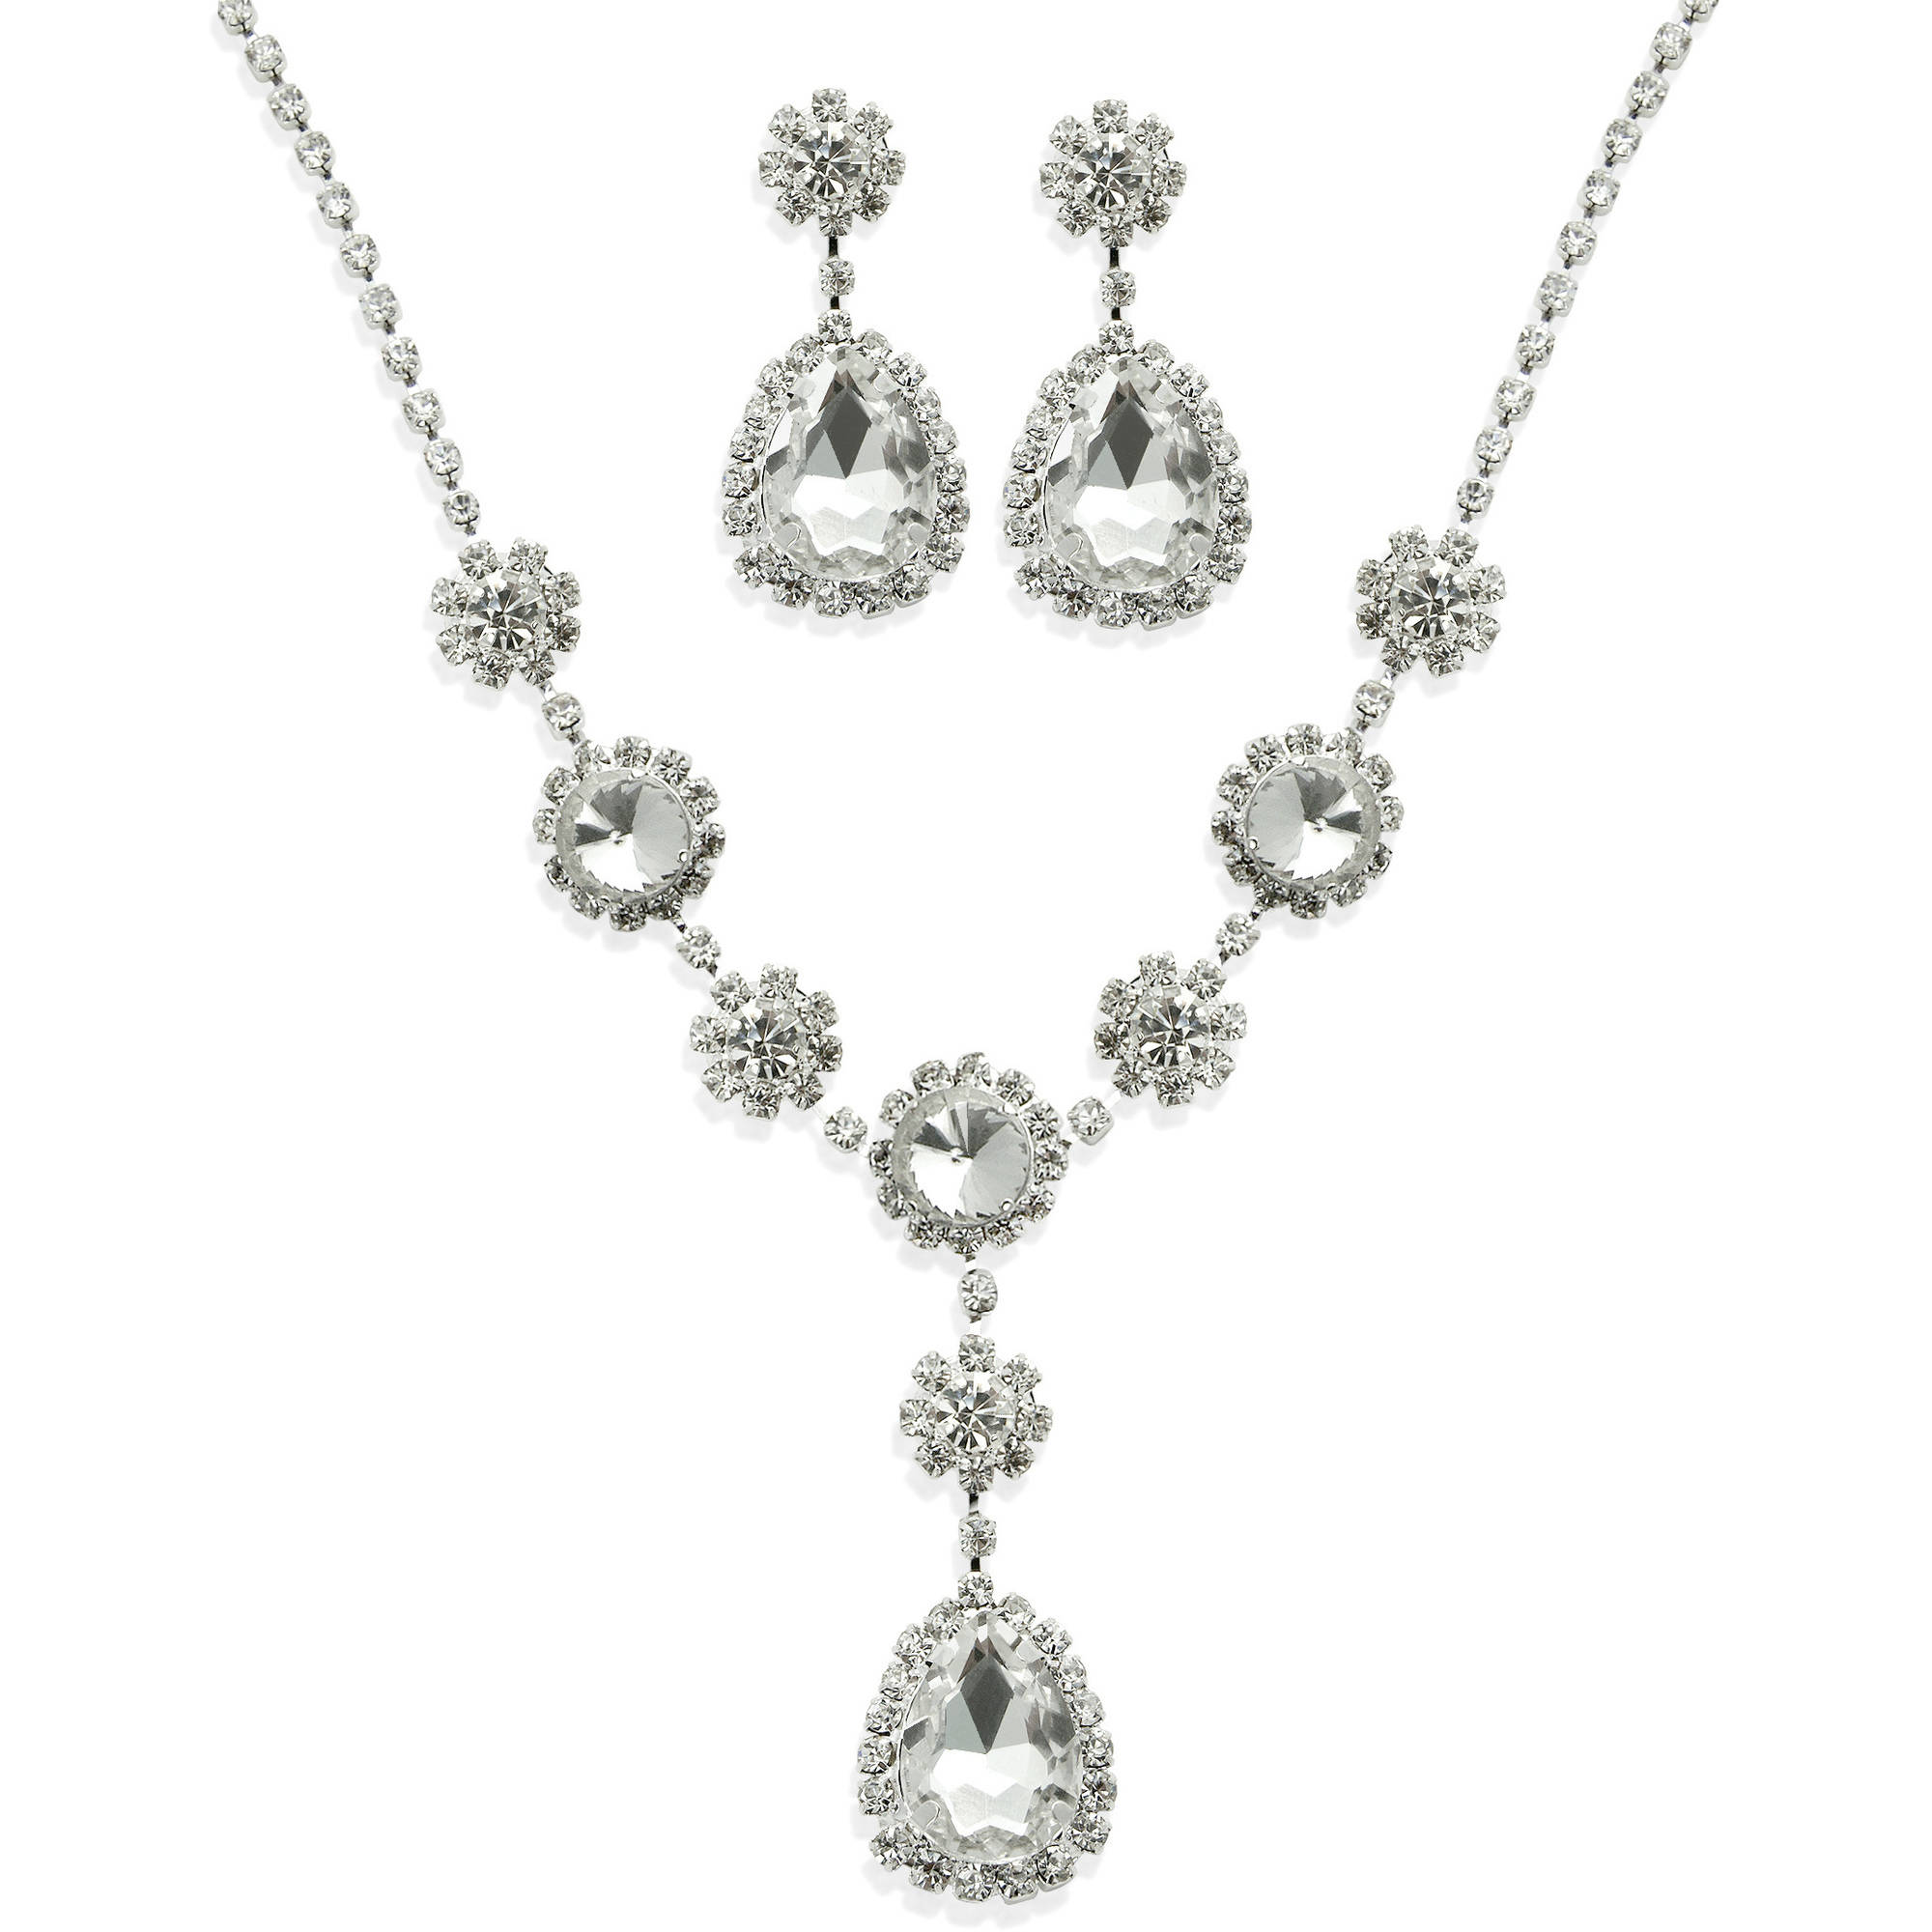 Glass Crystal Rhinestone Silver-Tone Teardrop Necklace and Earring Set, 16.5